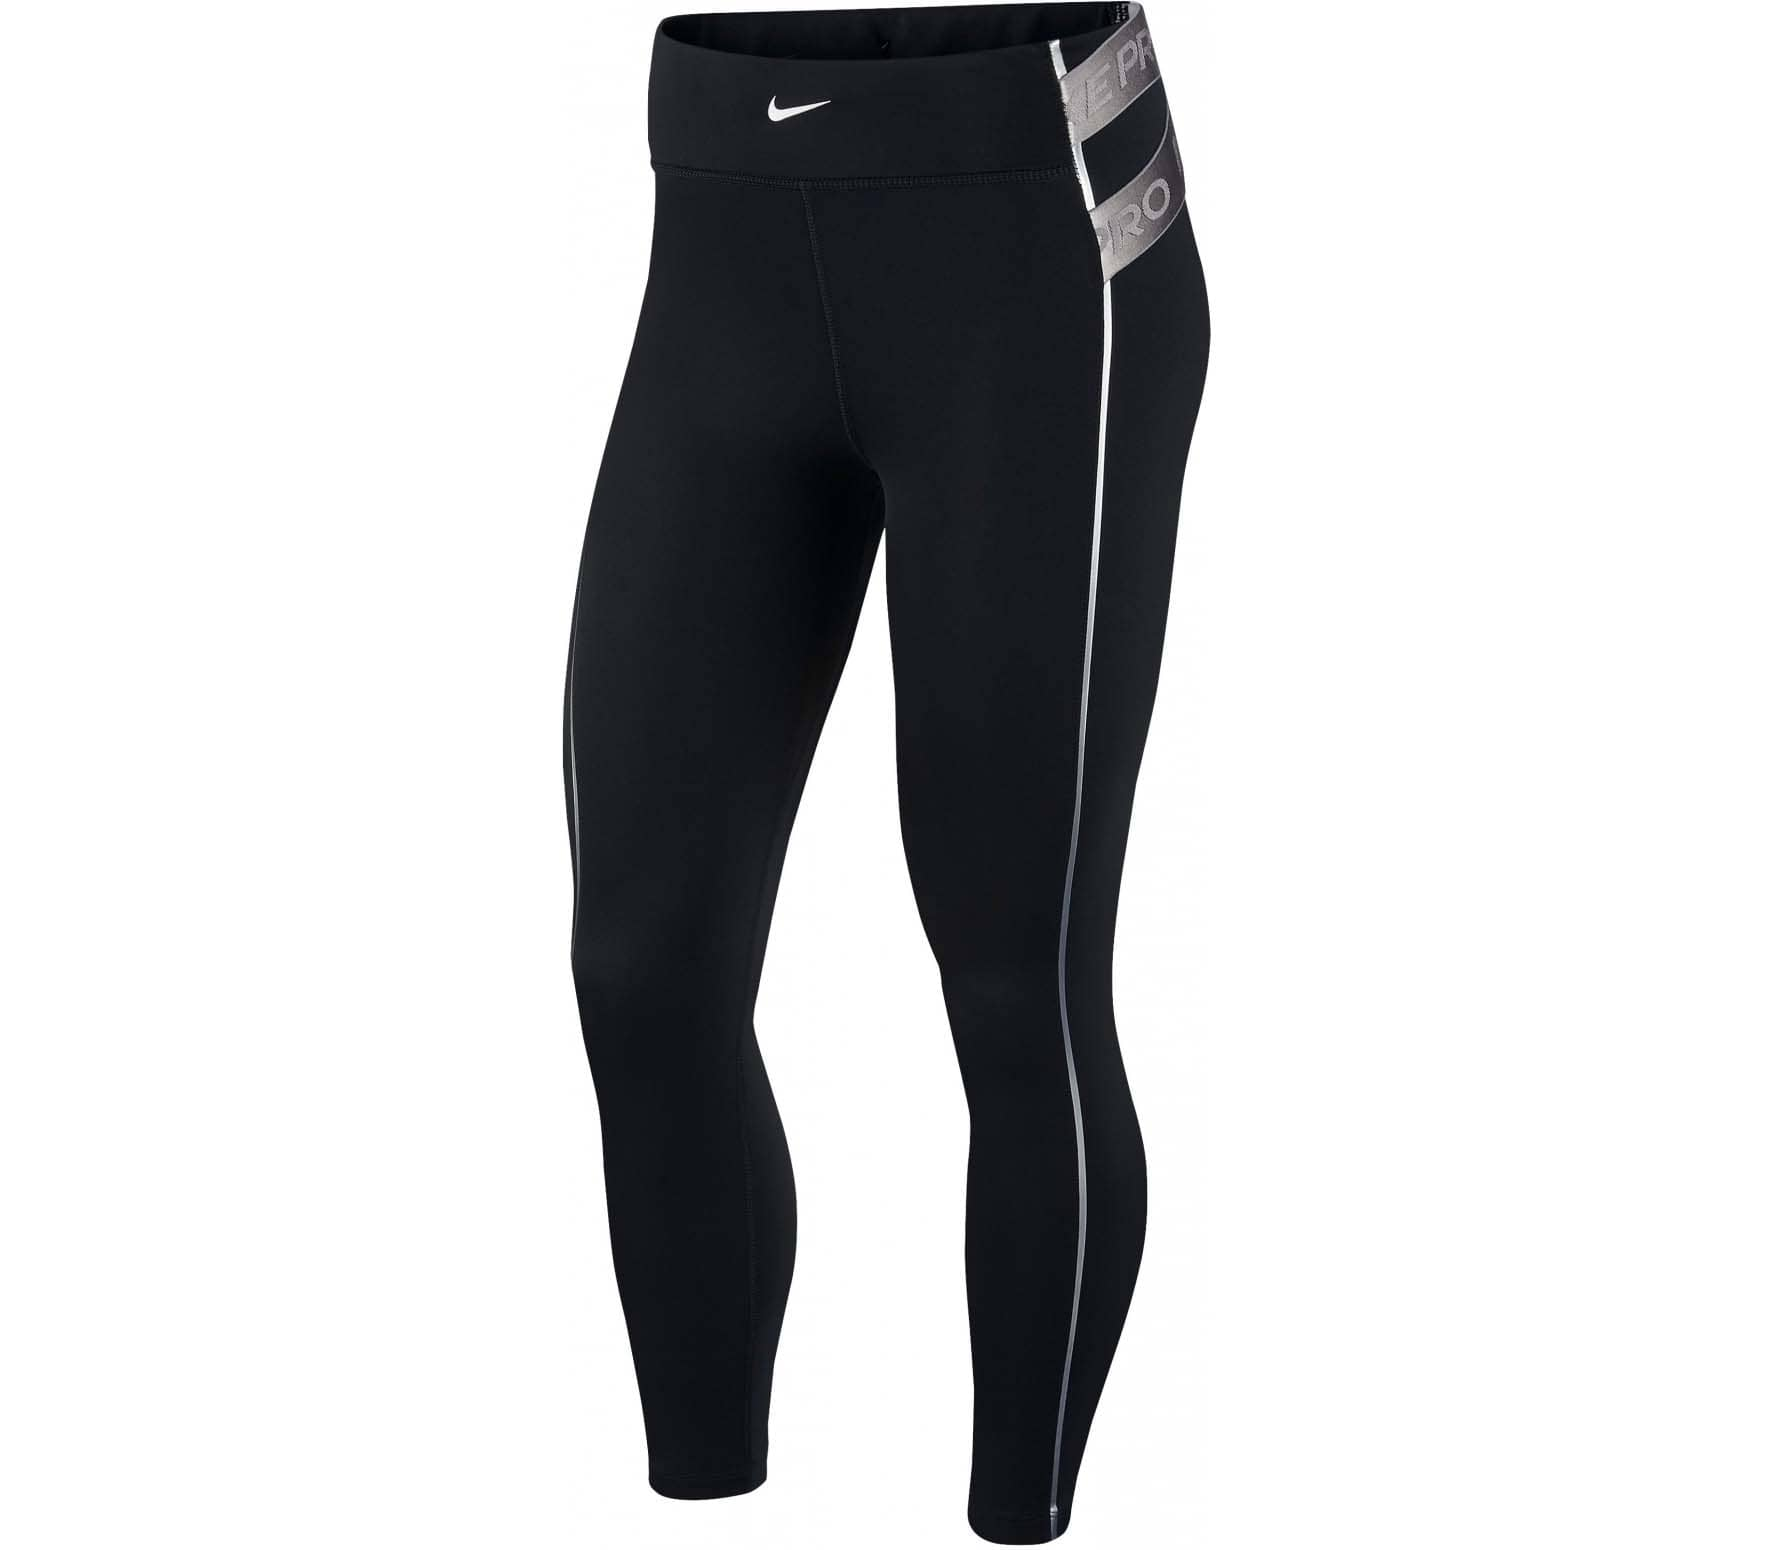 Pro HyperWarm Women Training Tights